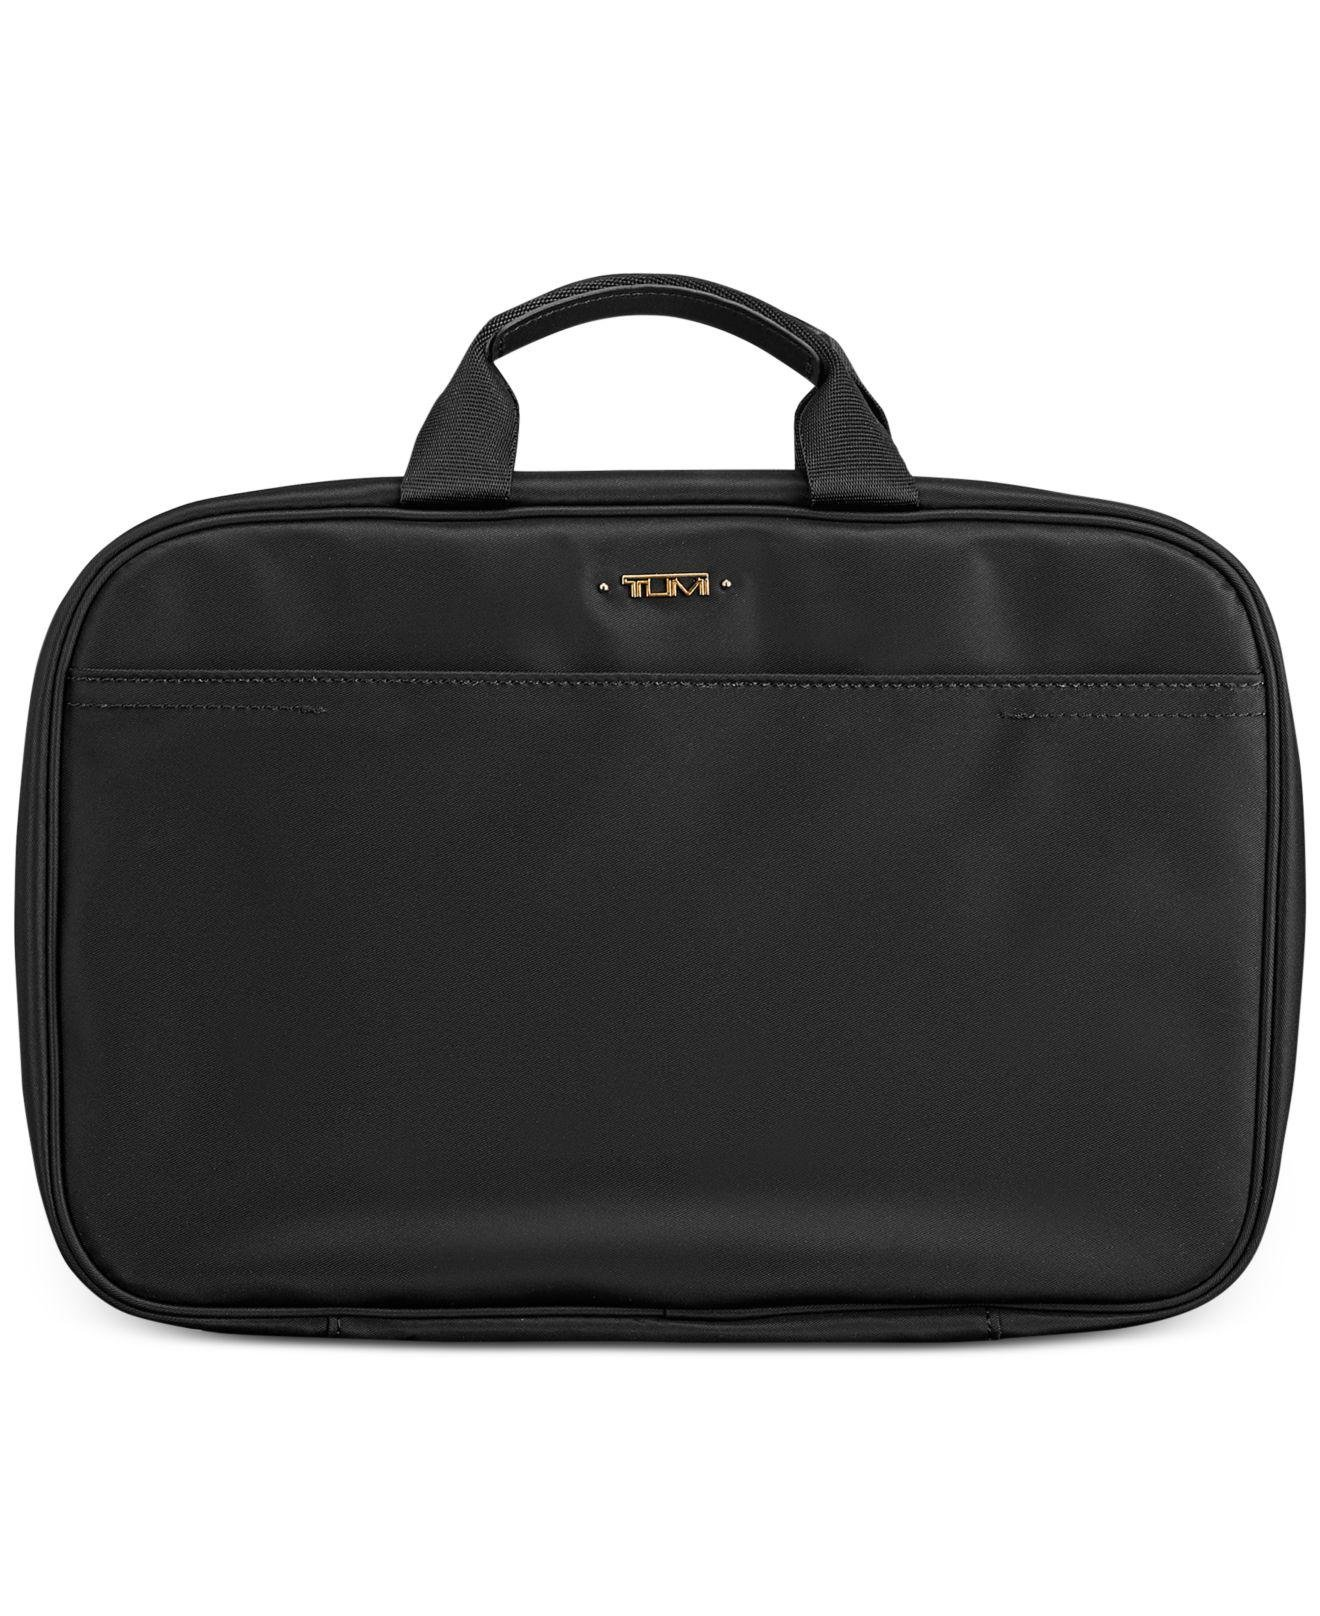 17b09f908111 Lyst - Tumi Voyageur Monaco Travel Kit in Black for Men